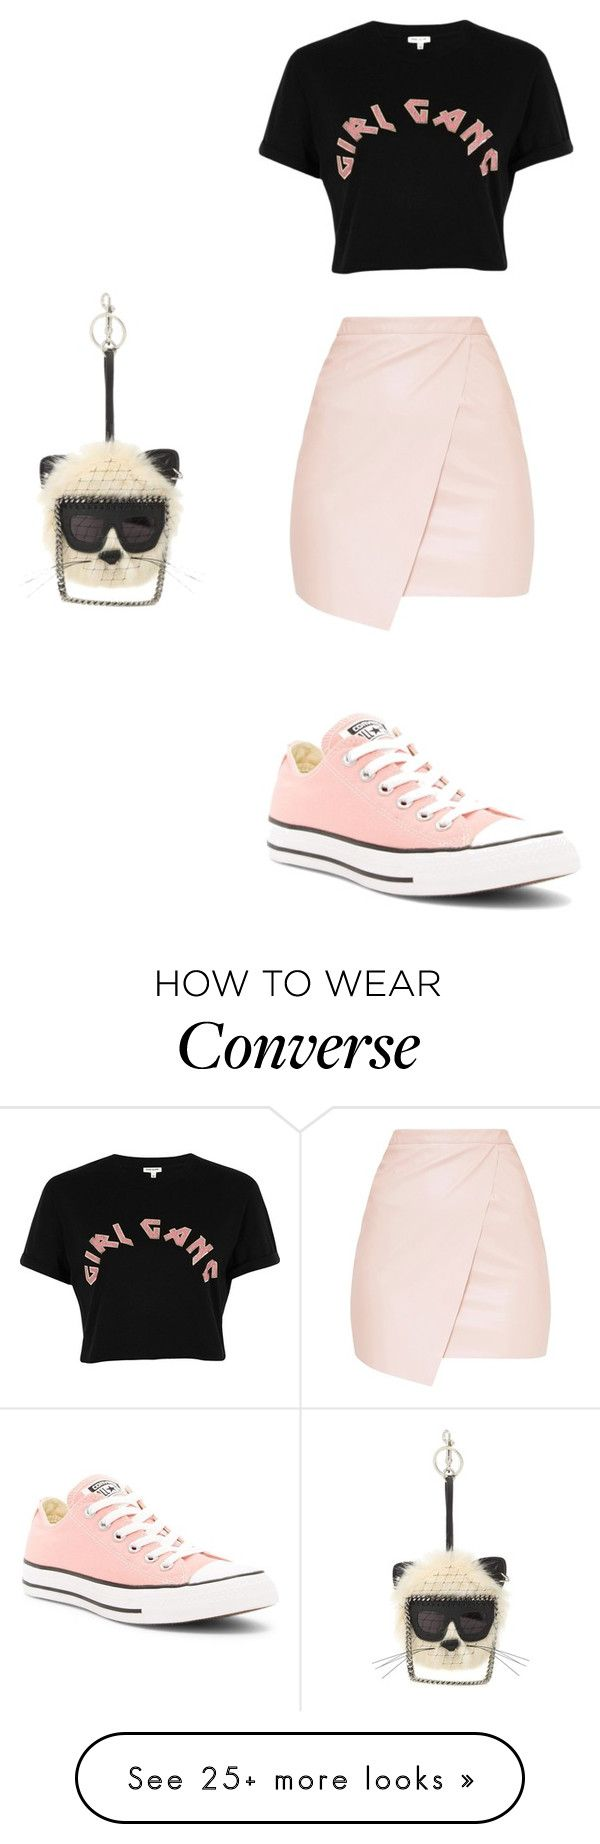 """""""Untitled #2442"""" by angfra on Polyvore featuring STELLA McCARTNEY, River Island and Converse"""